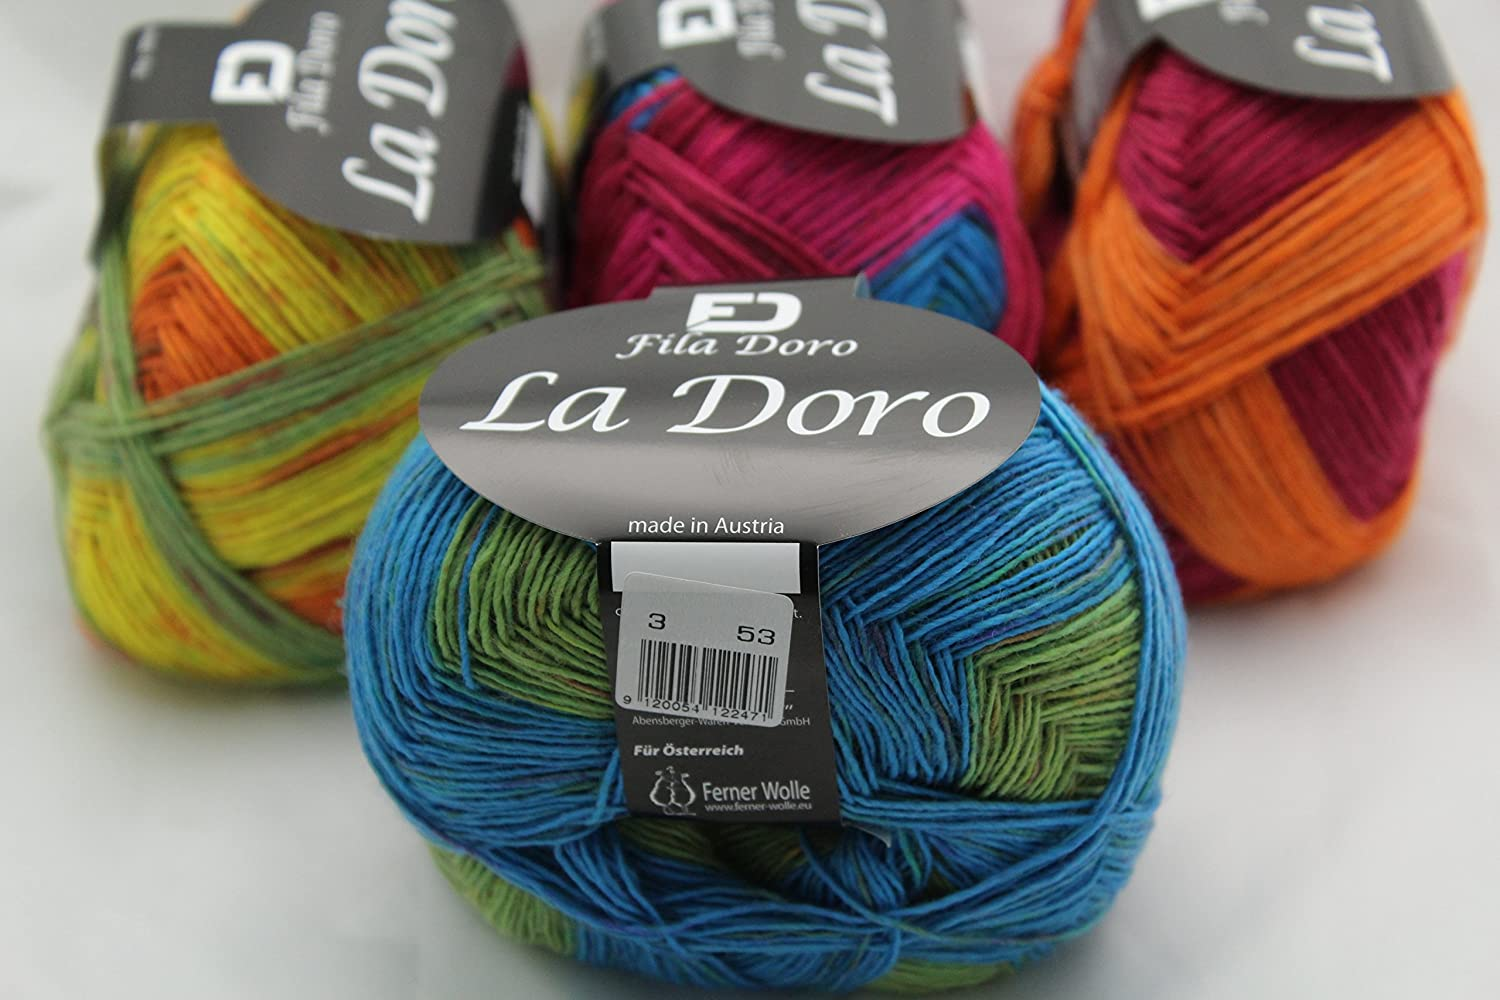 amazon com la doro ferner wolle, variegated yarn, fine lace  wolle blends c 2_15 #8